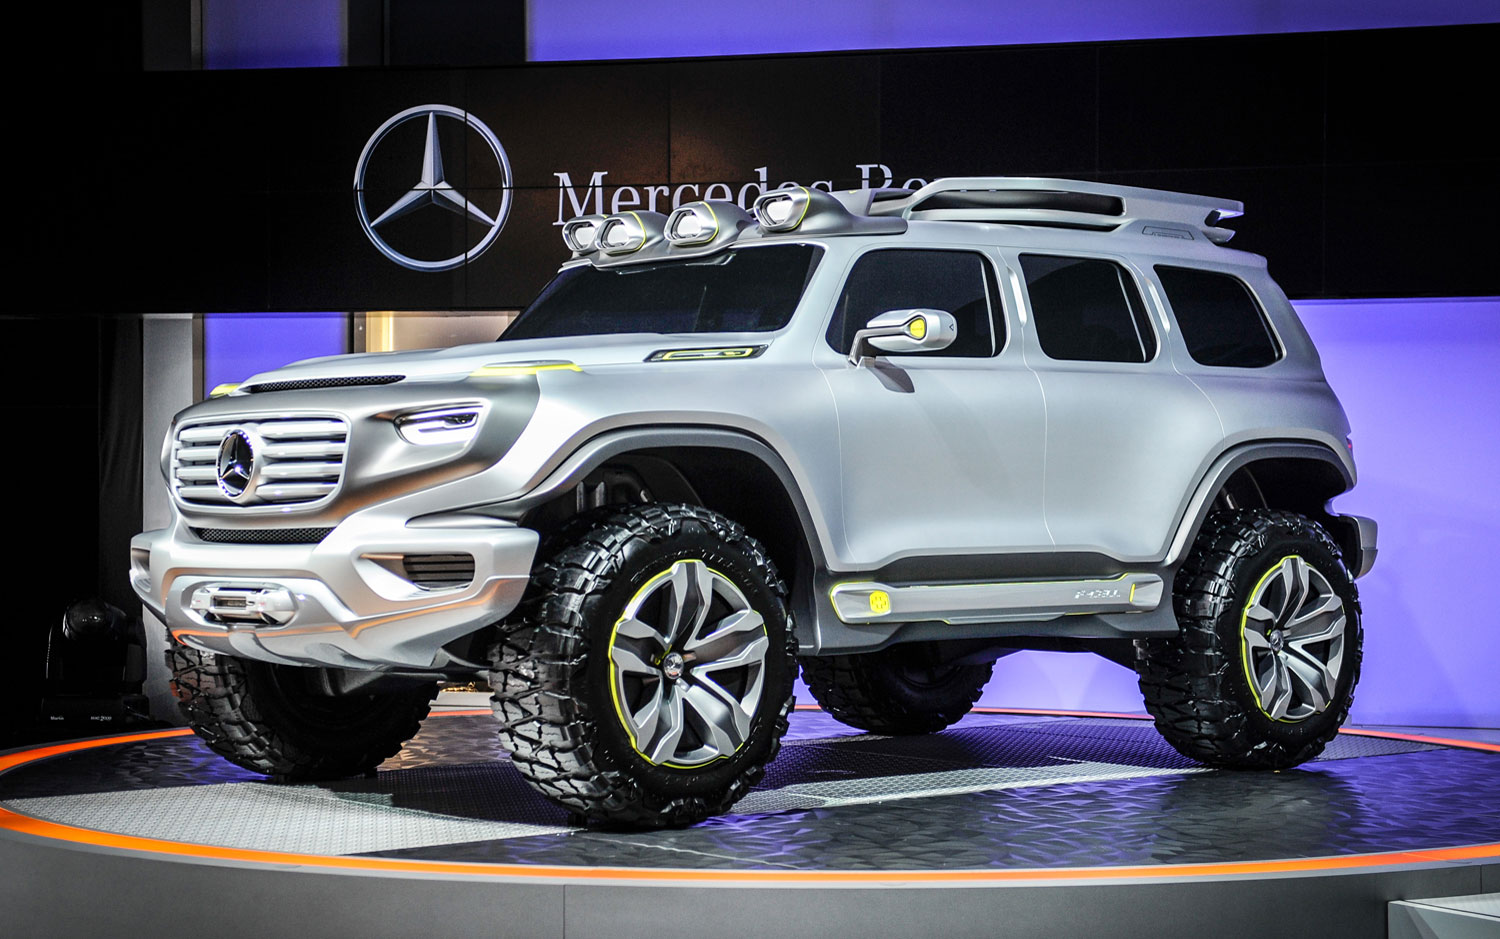 mercedes benz force ener amg concept series sls suv unveils most suvs cars luxury class luxurious models motortrend front sketch